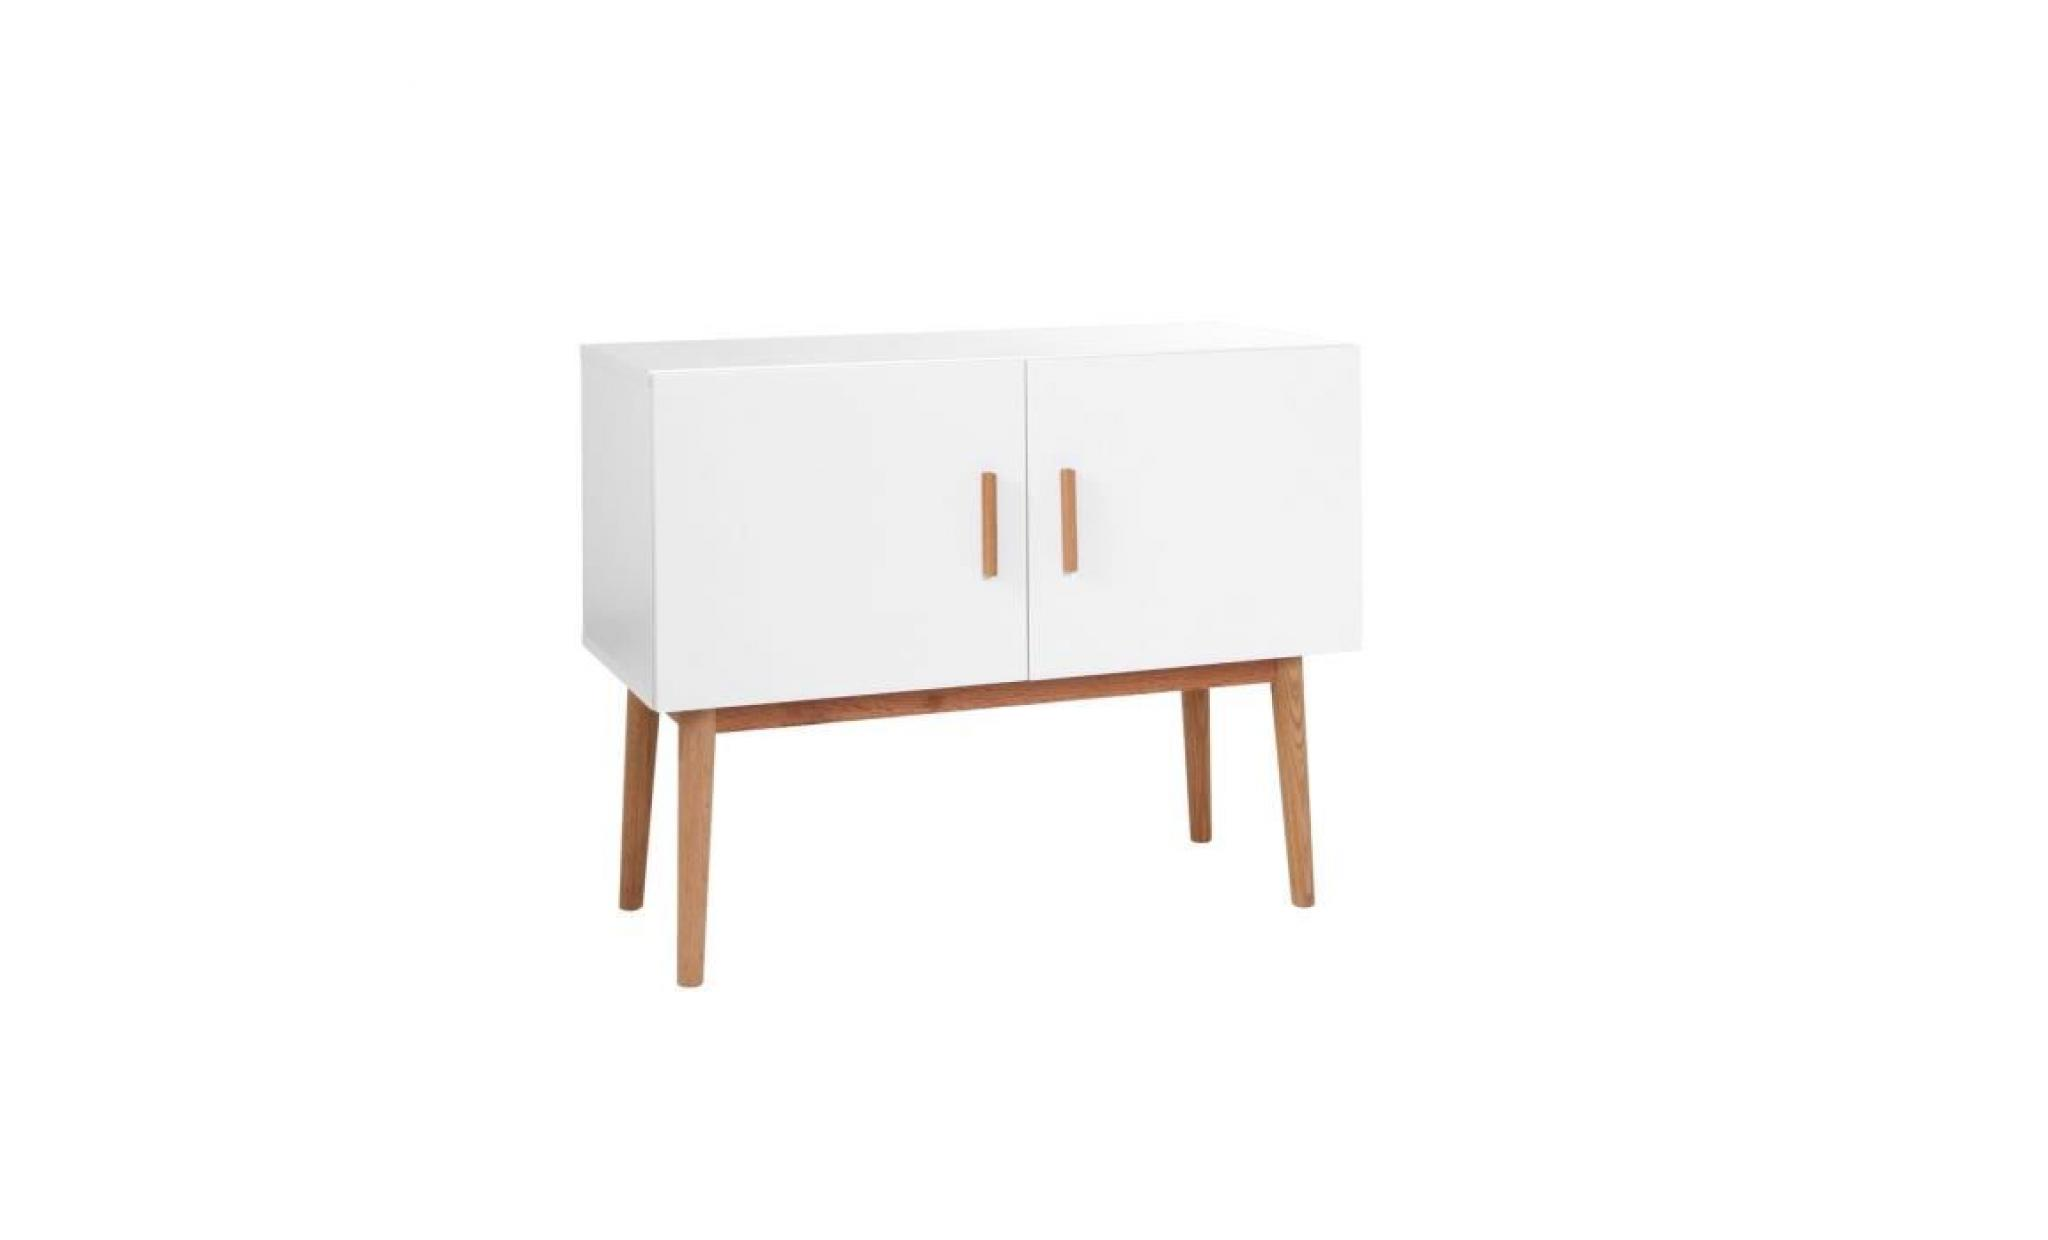 miliboo buffet bois naturel et blanc 2 portes achat vente buffet pas cher couleur et. Black Bedroom Furniture Sets. Home Design Ideas